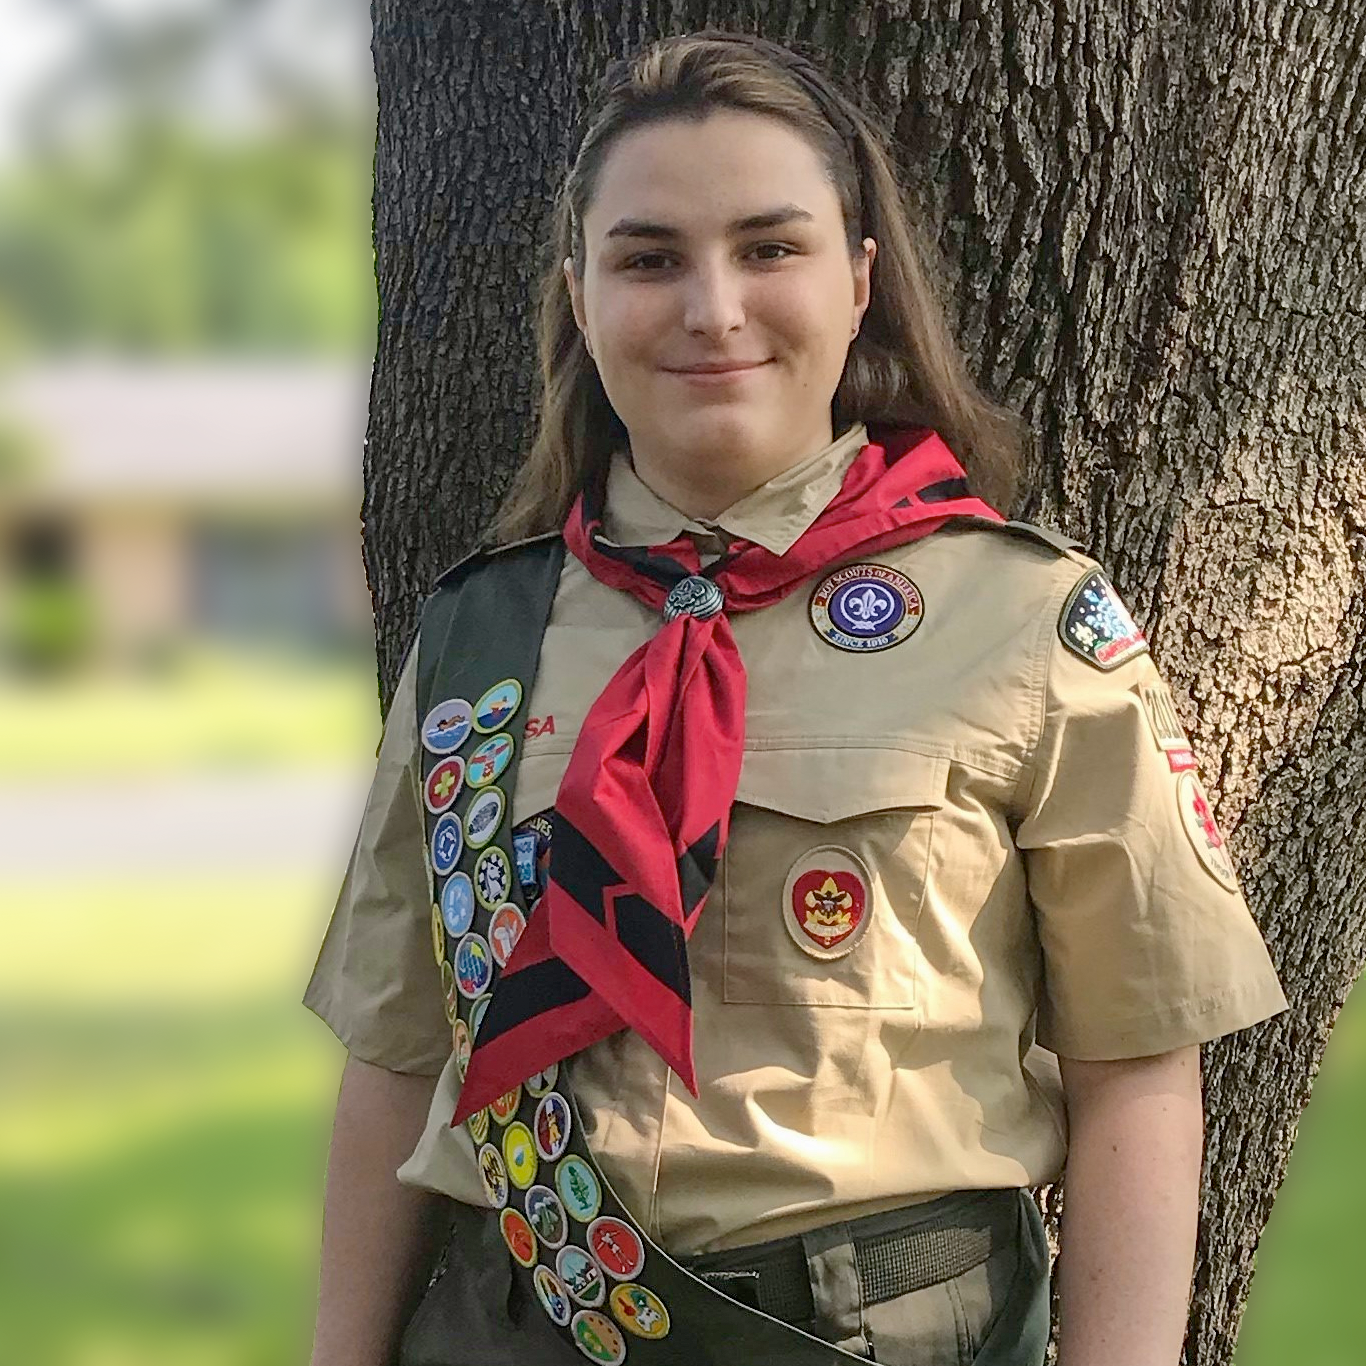 Eagle Scout Beatrix Jackman smiles at the camera as she stands in her uniform in front of a tree